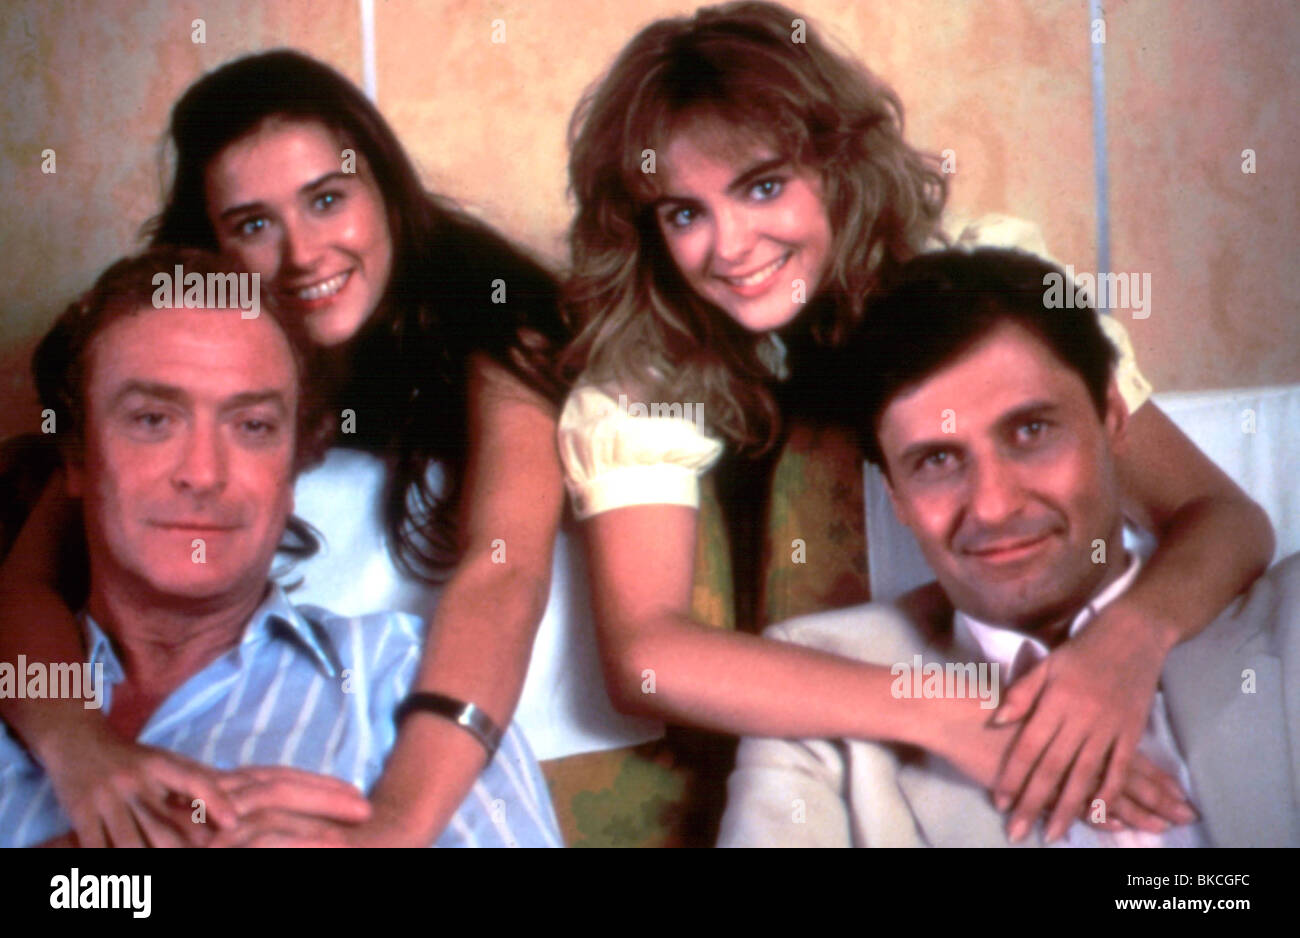 blame-it-on-rio-1983-michael-caine-demi-moore-michelle-johnson-joseph-BKCGFC.jpg